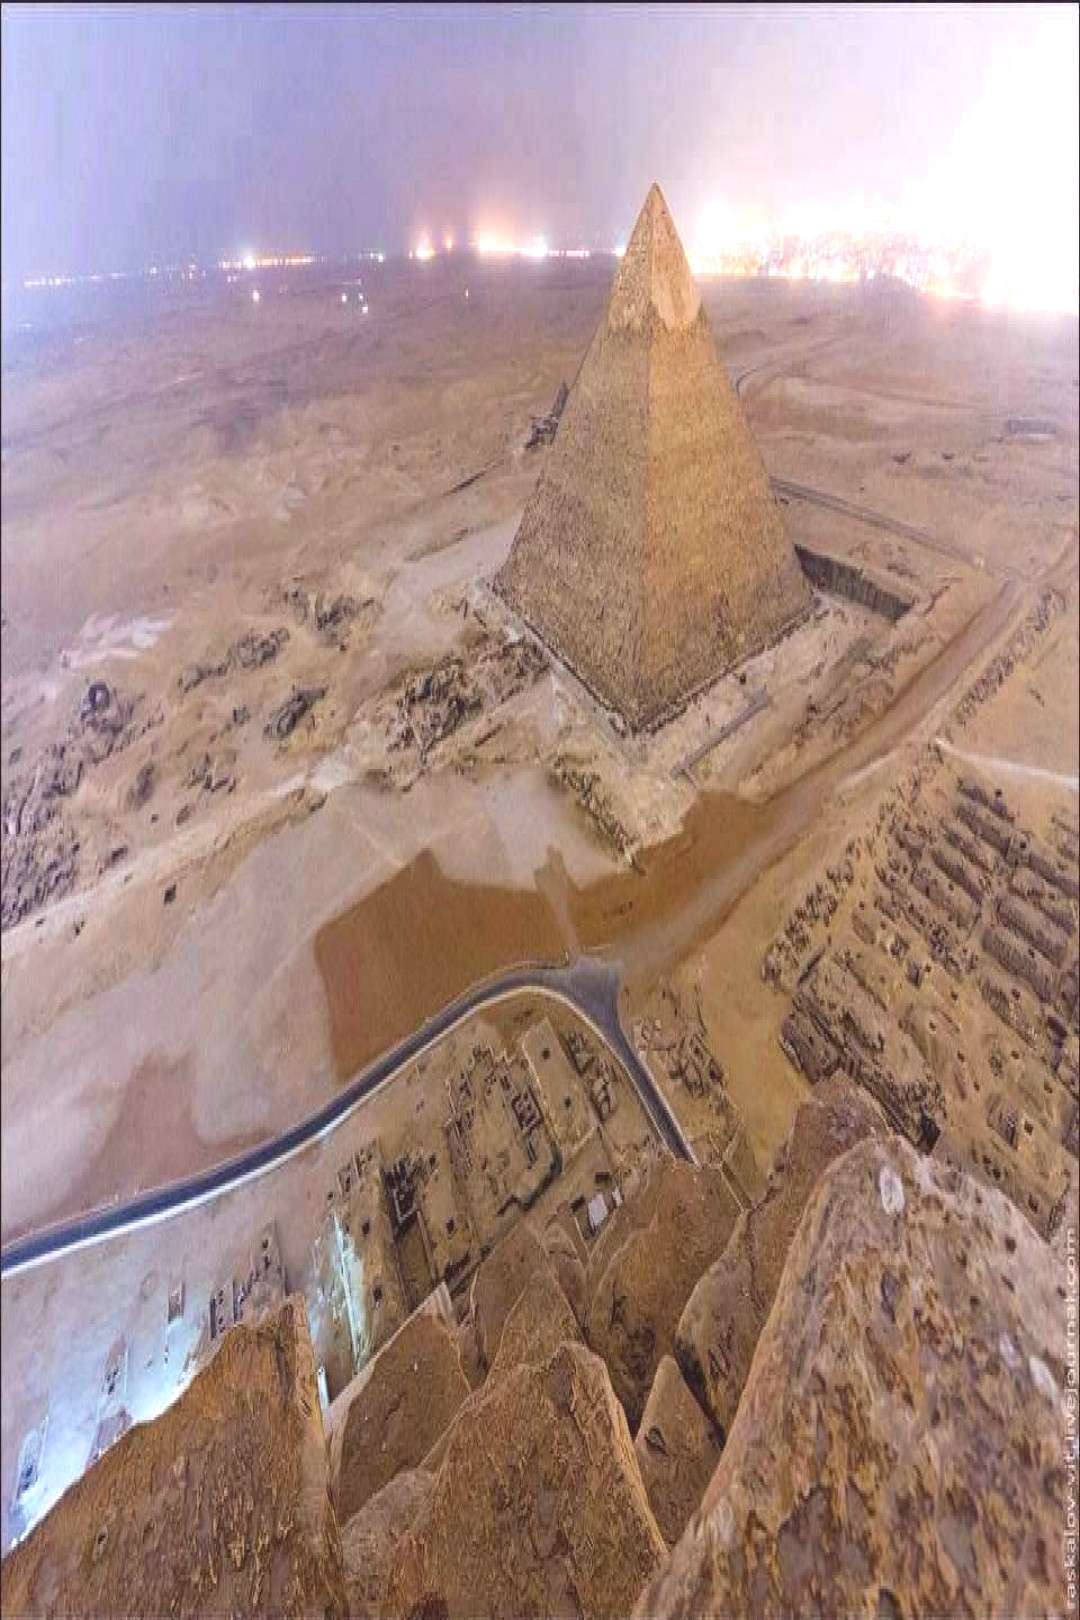 Pyramid of Khafre (Chefren) Photo of the day The Pyramid of Khafre, the second largest pyramid of